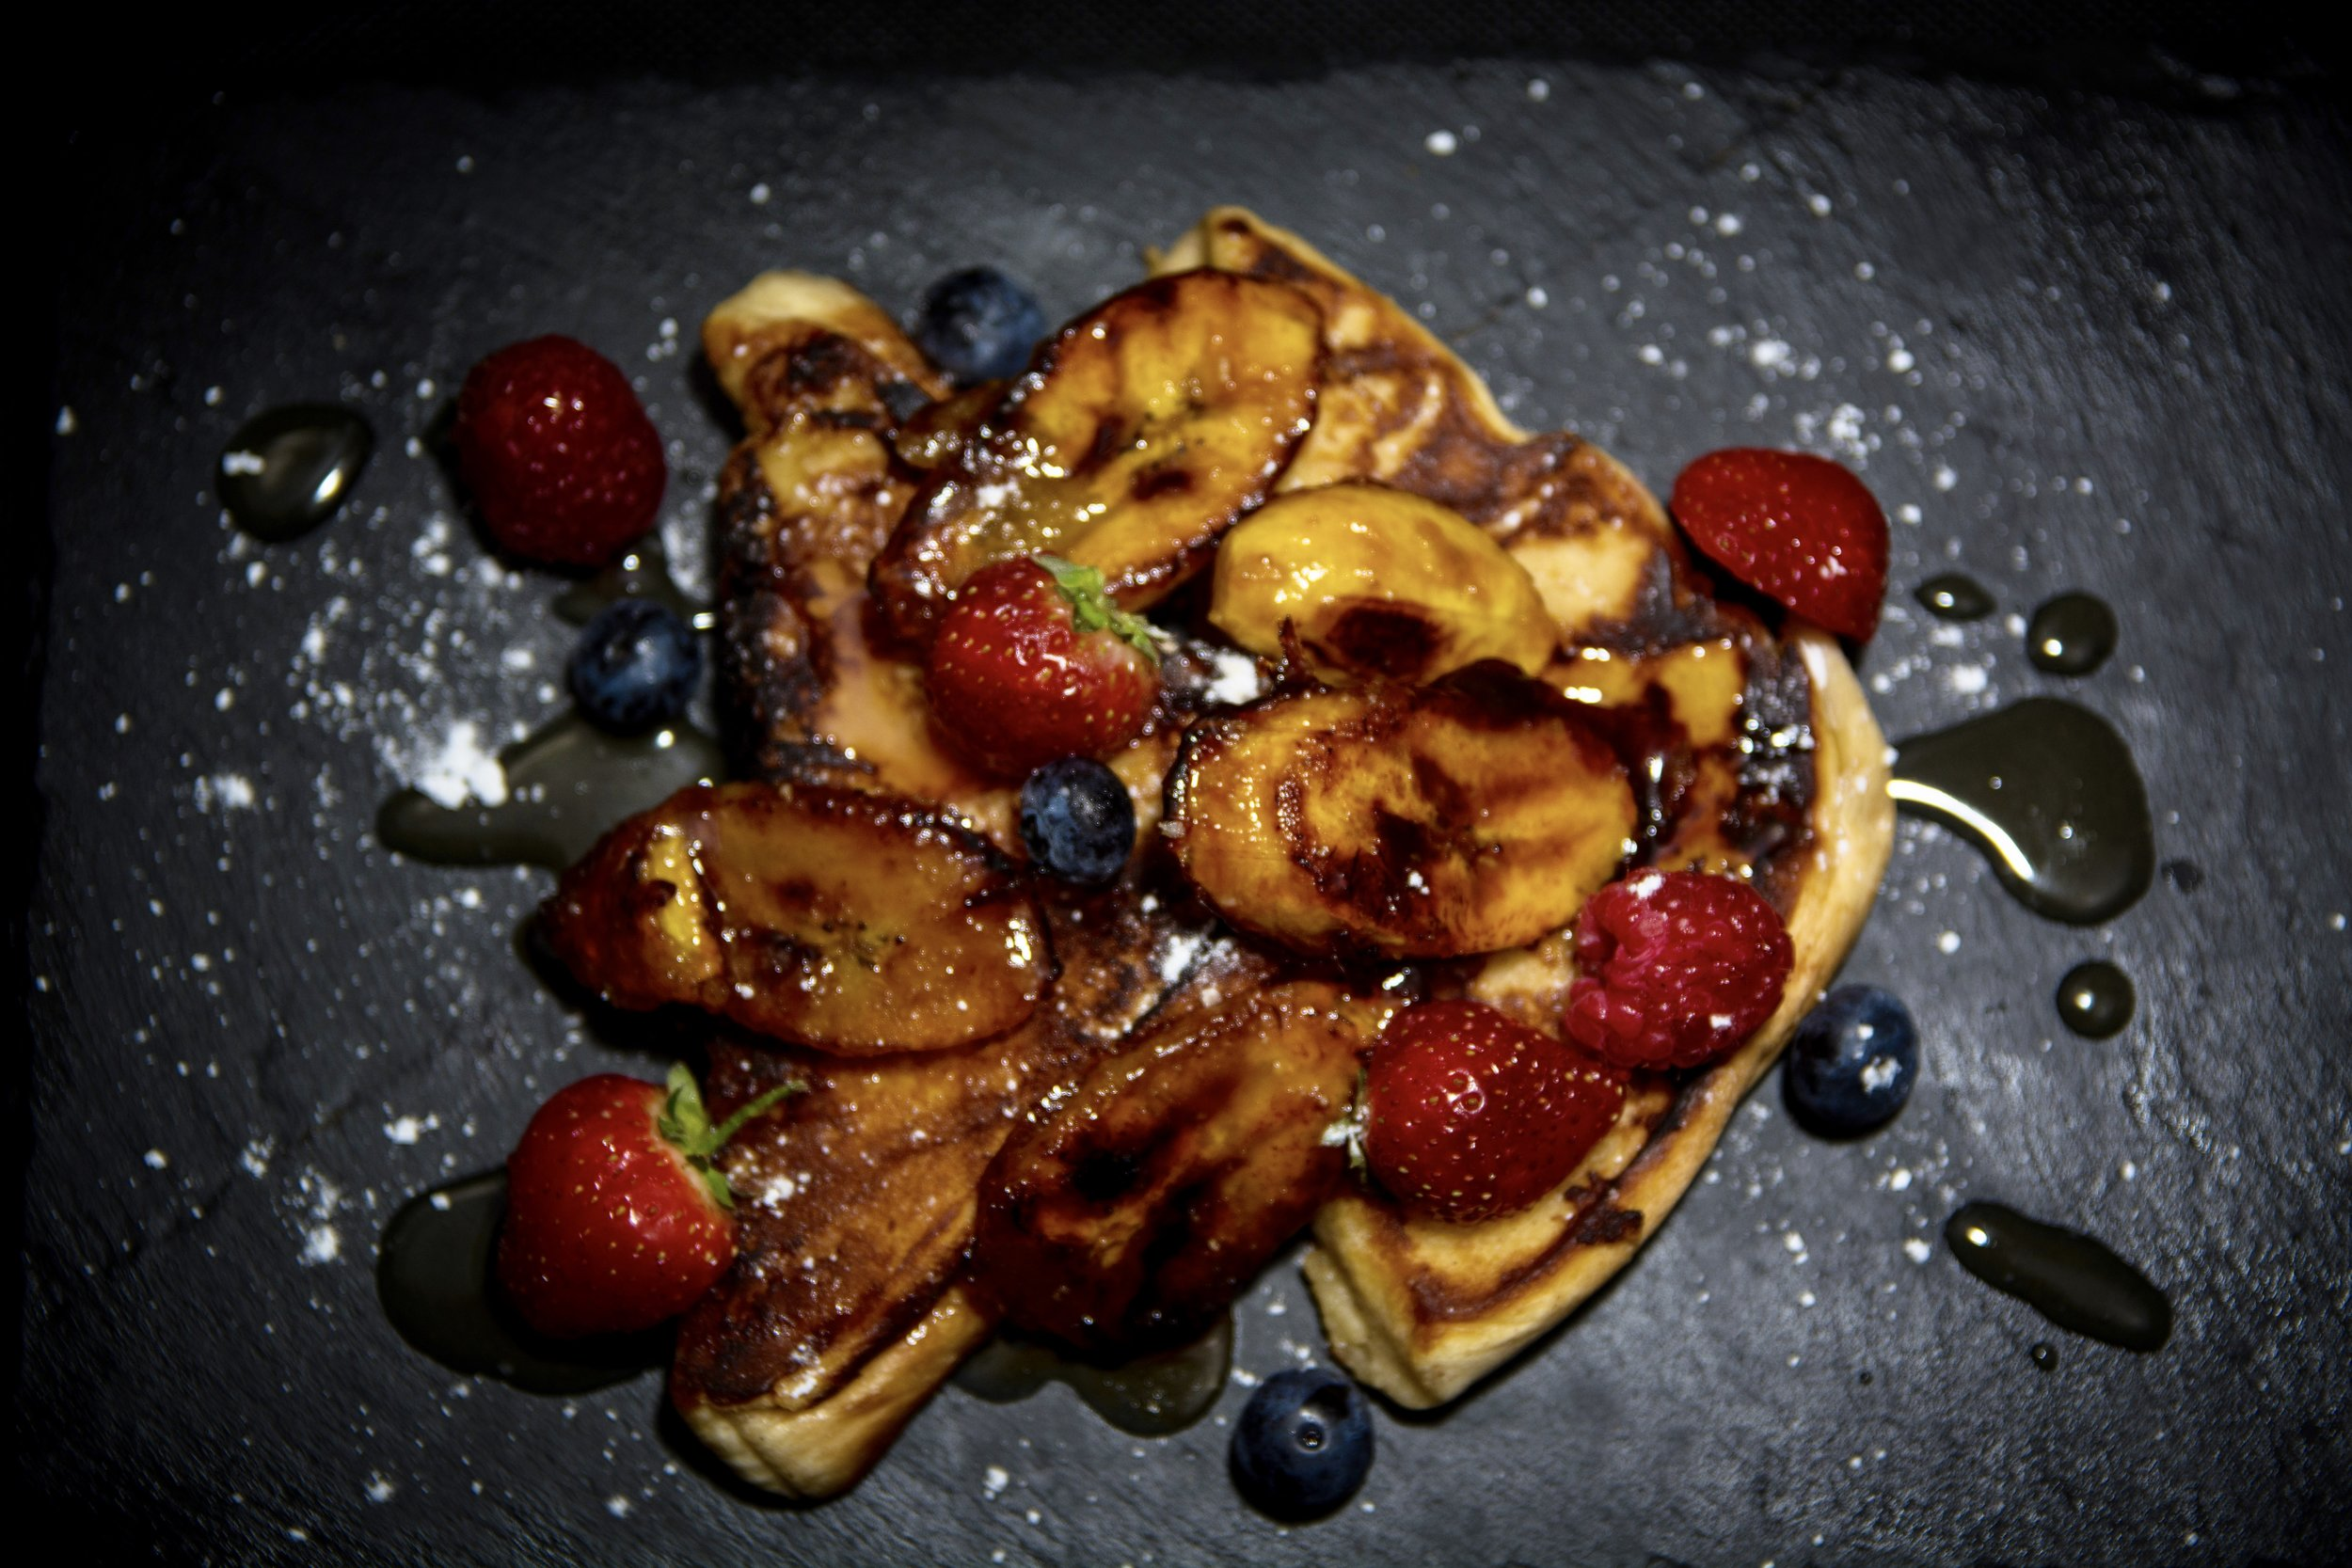 Agege French Toast with mixed berries served with ice cream